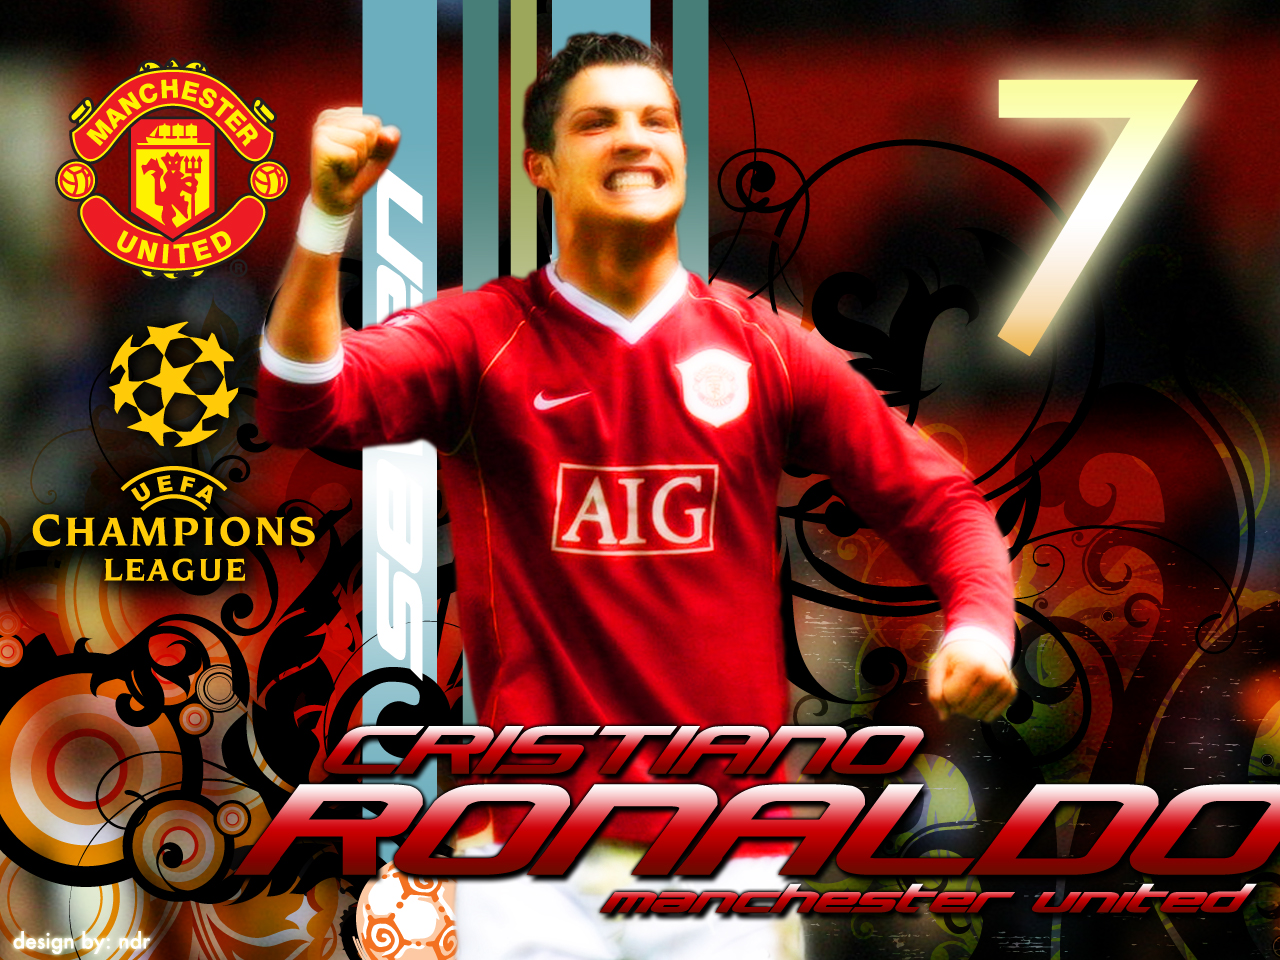 cristiano ronaldo wallpaper manchester united Photo